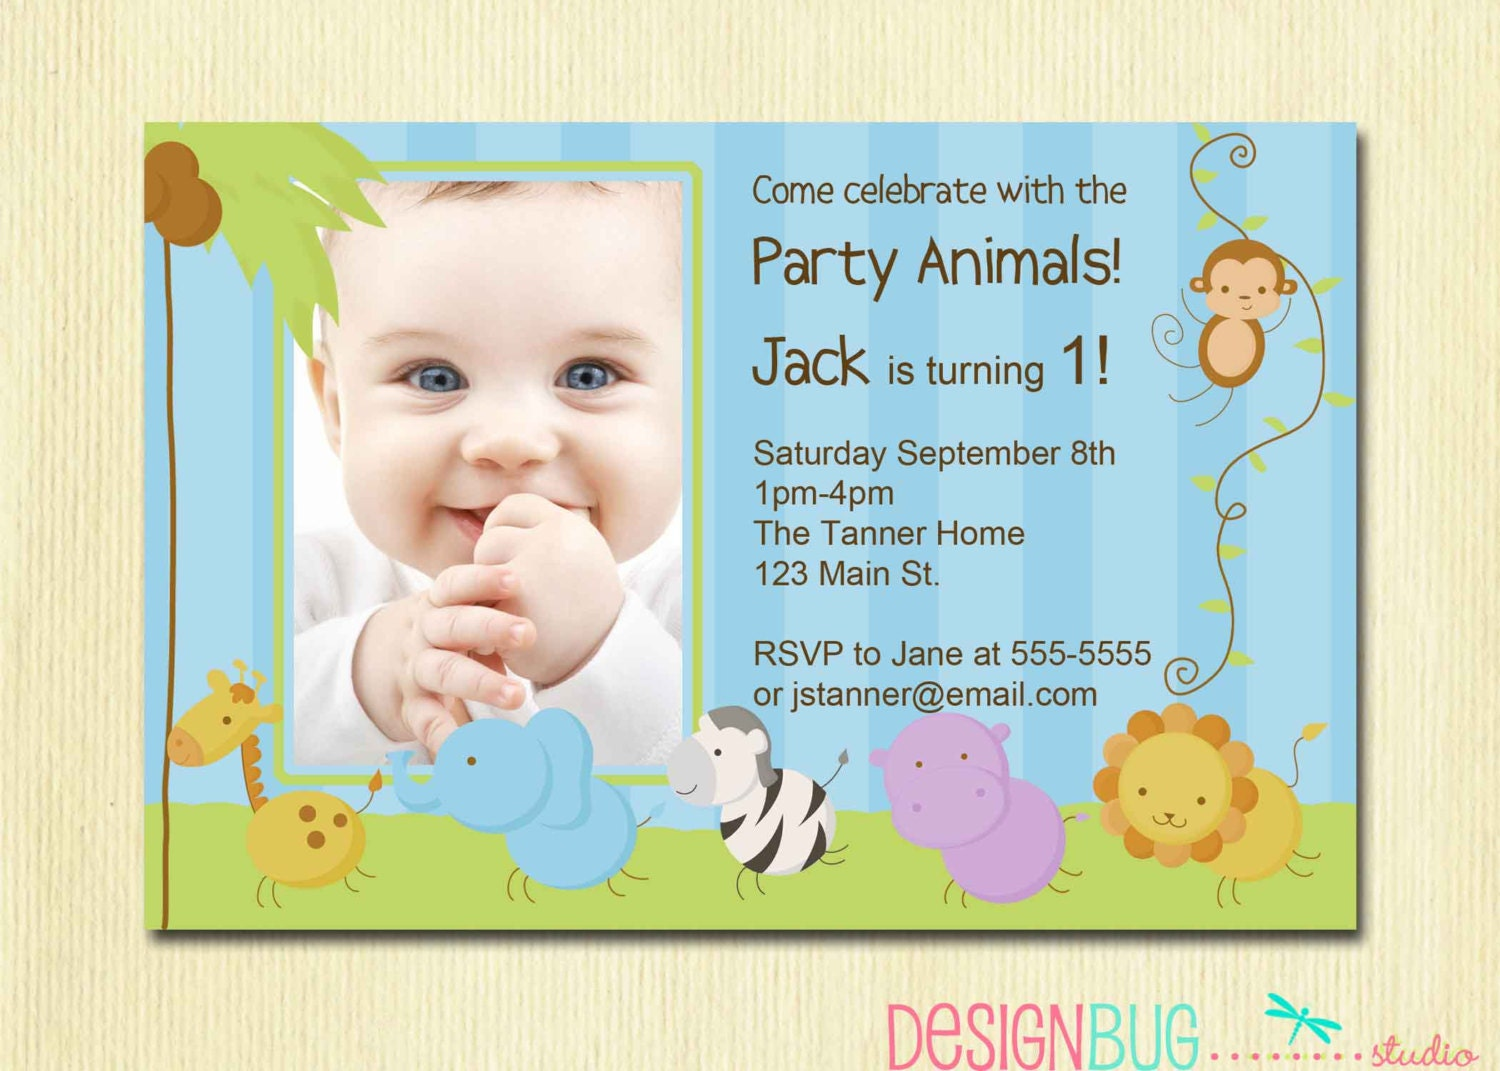 1st birthday party invitations for boys dawaydabrowa 1st birthday party invitations for boys stopboris